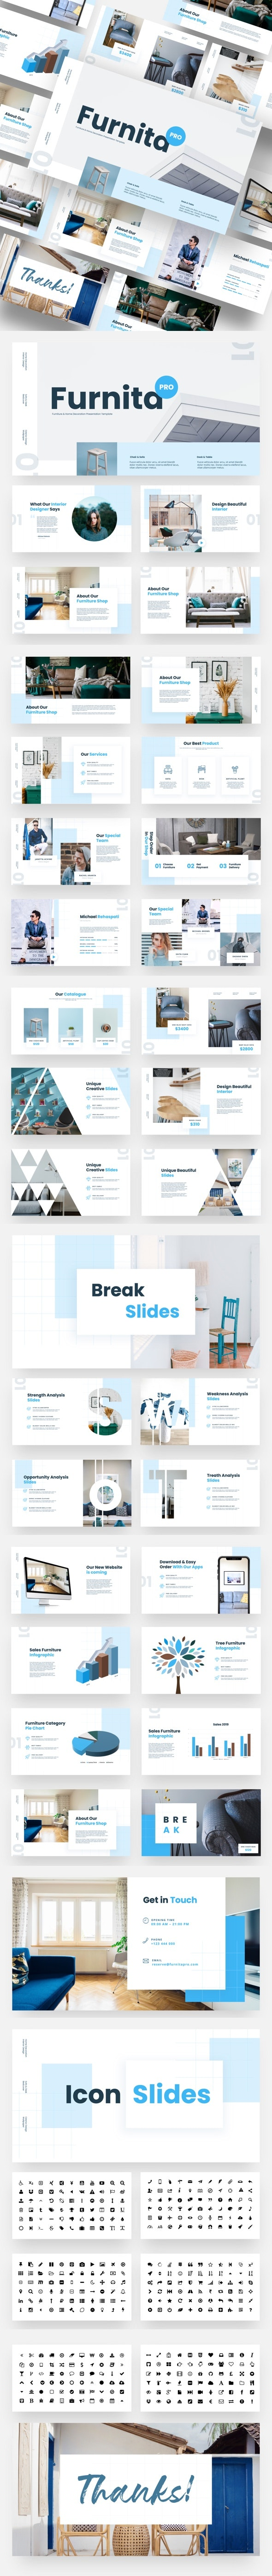 Furnita Pro - Furniture & Home Decoration Google Slides Template - Google Slides Presentation Templates